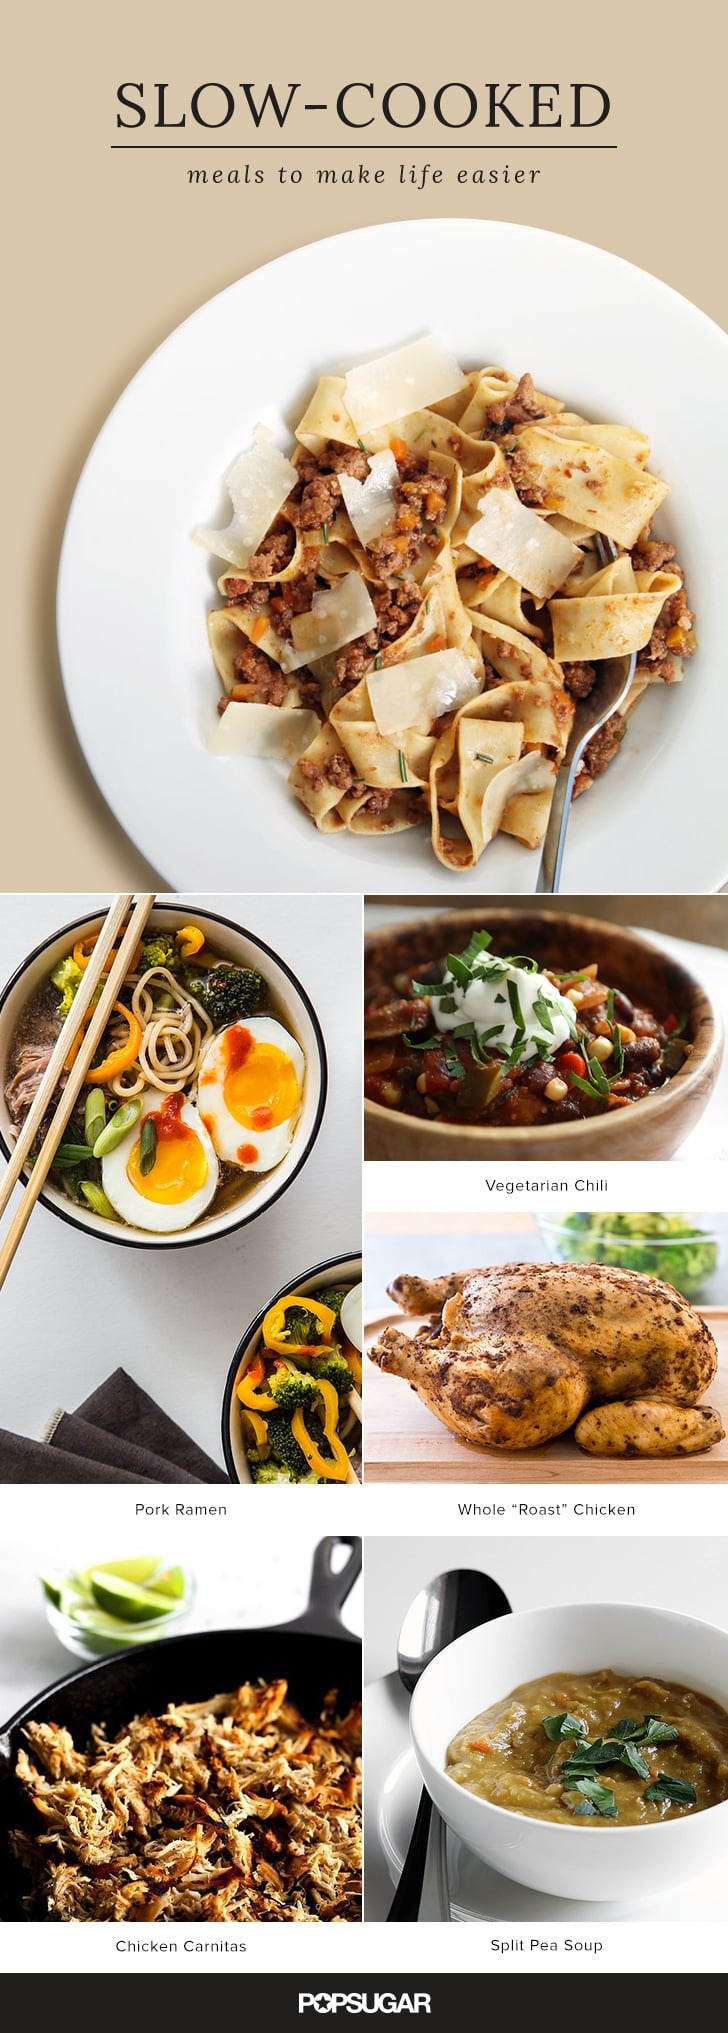 20 Slow-Cooked Meals to Make Life Easier